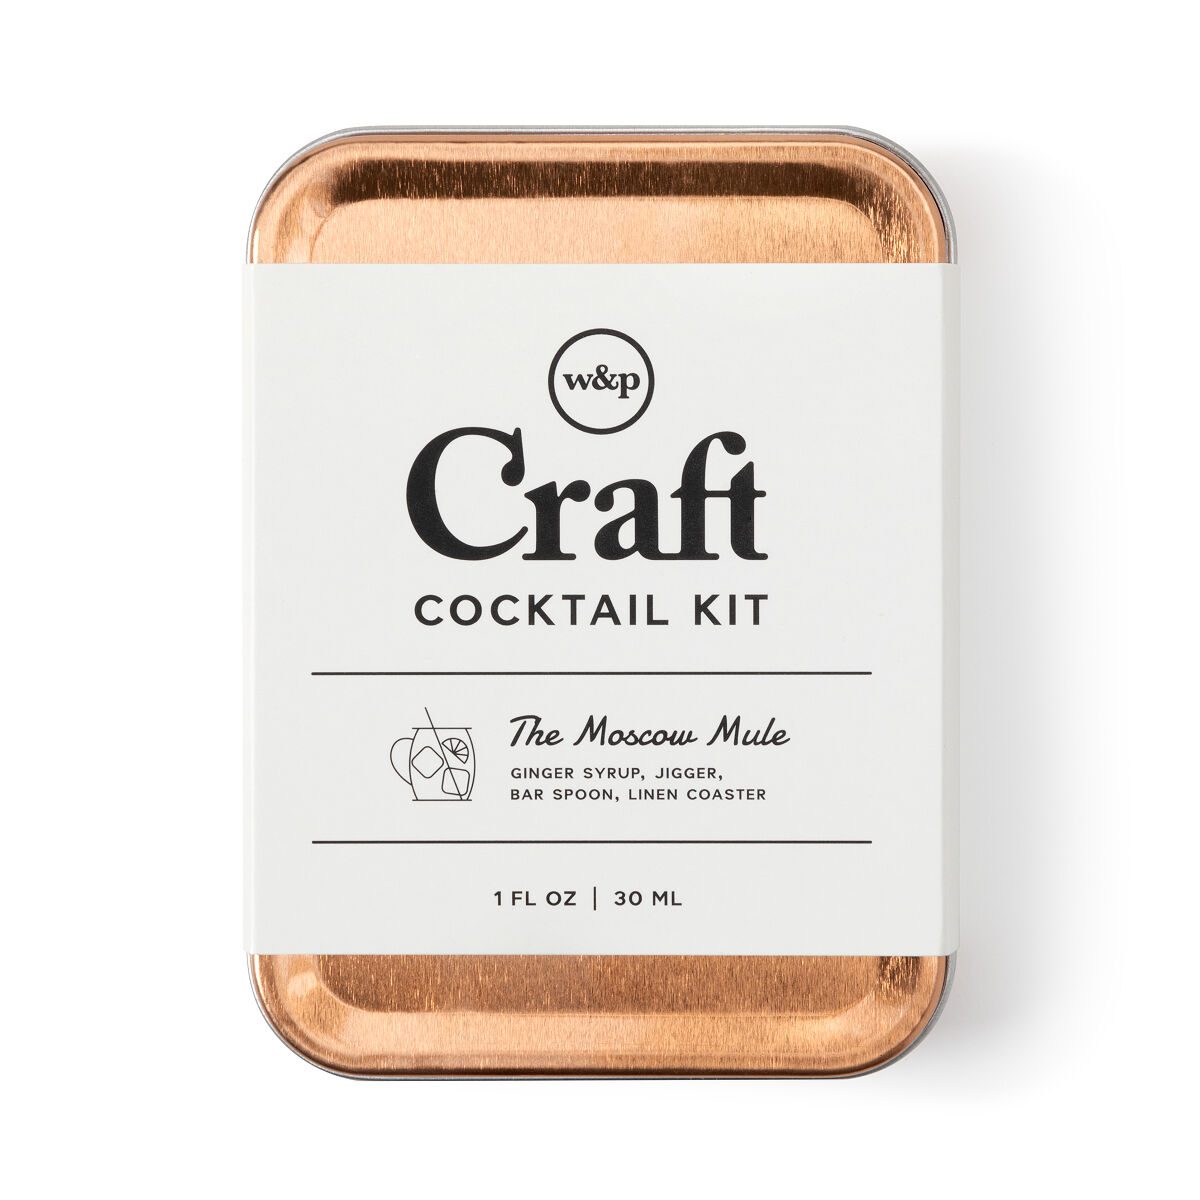 Moscow Mule Carry On Cocktail Kit Airplane Cocktails